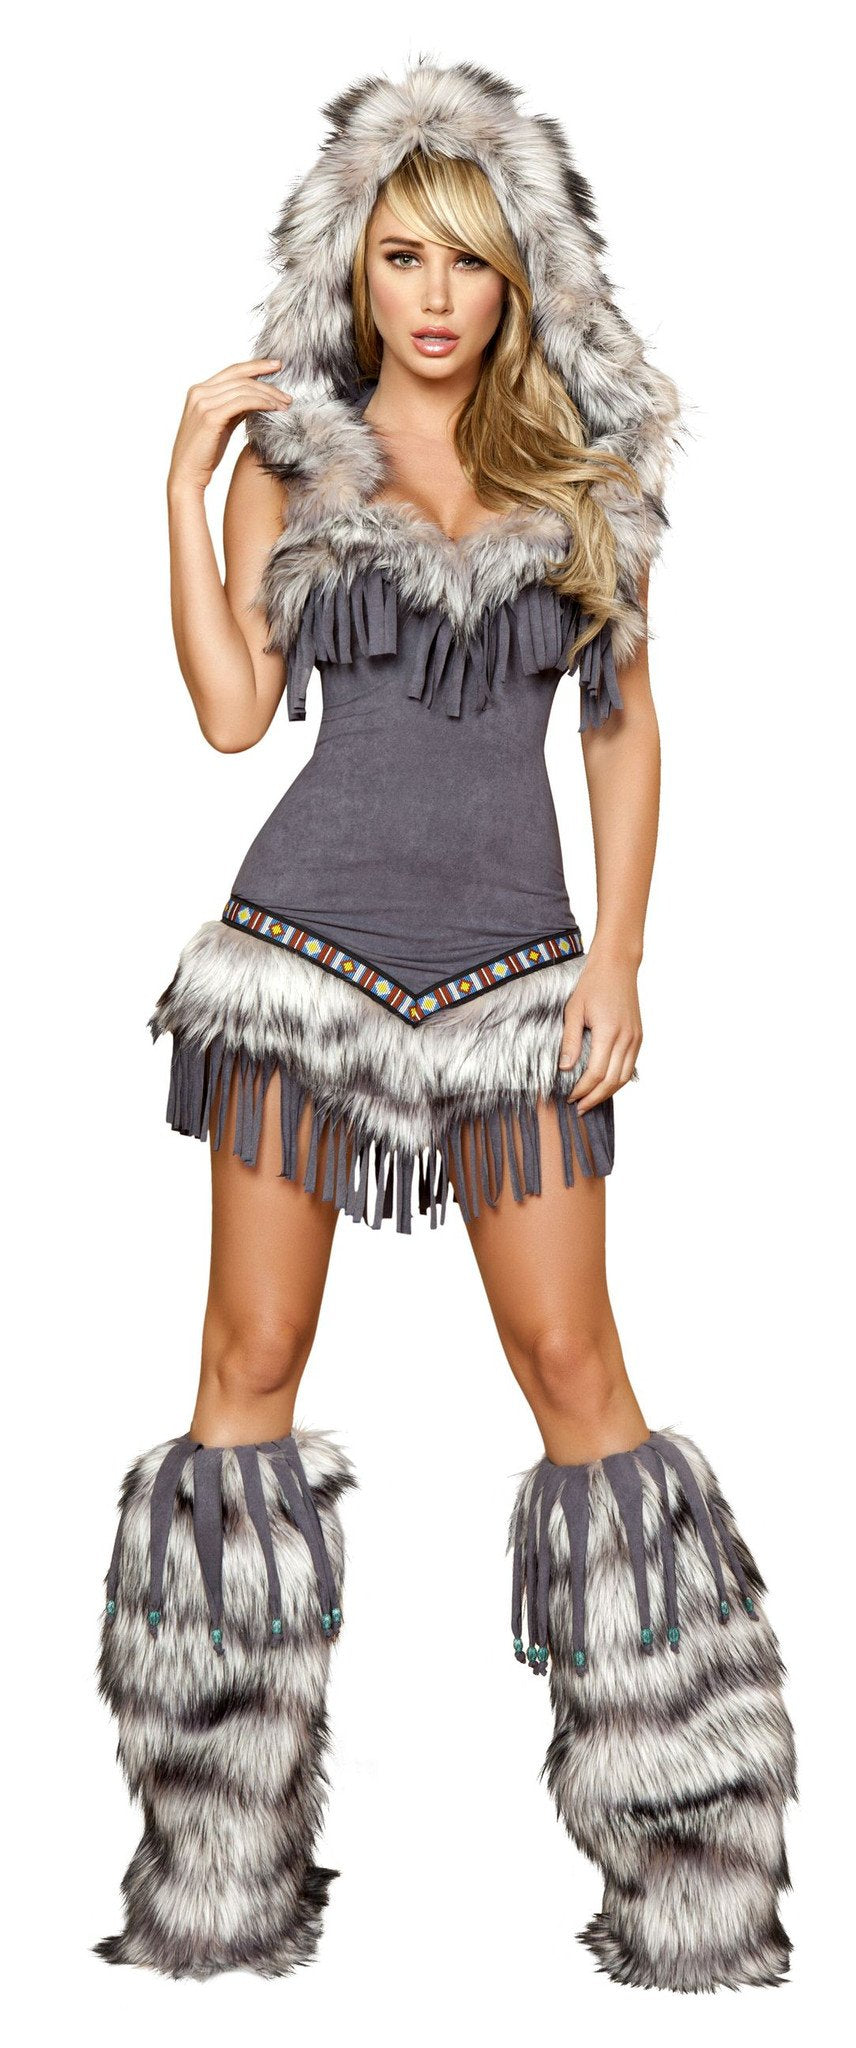 Buy 4427 - Native American Temptress from Rave Fix for $74.25 with Same Day Shipping Designed by Roma Costume 4427-AS-S